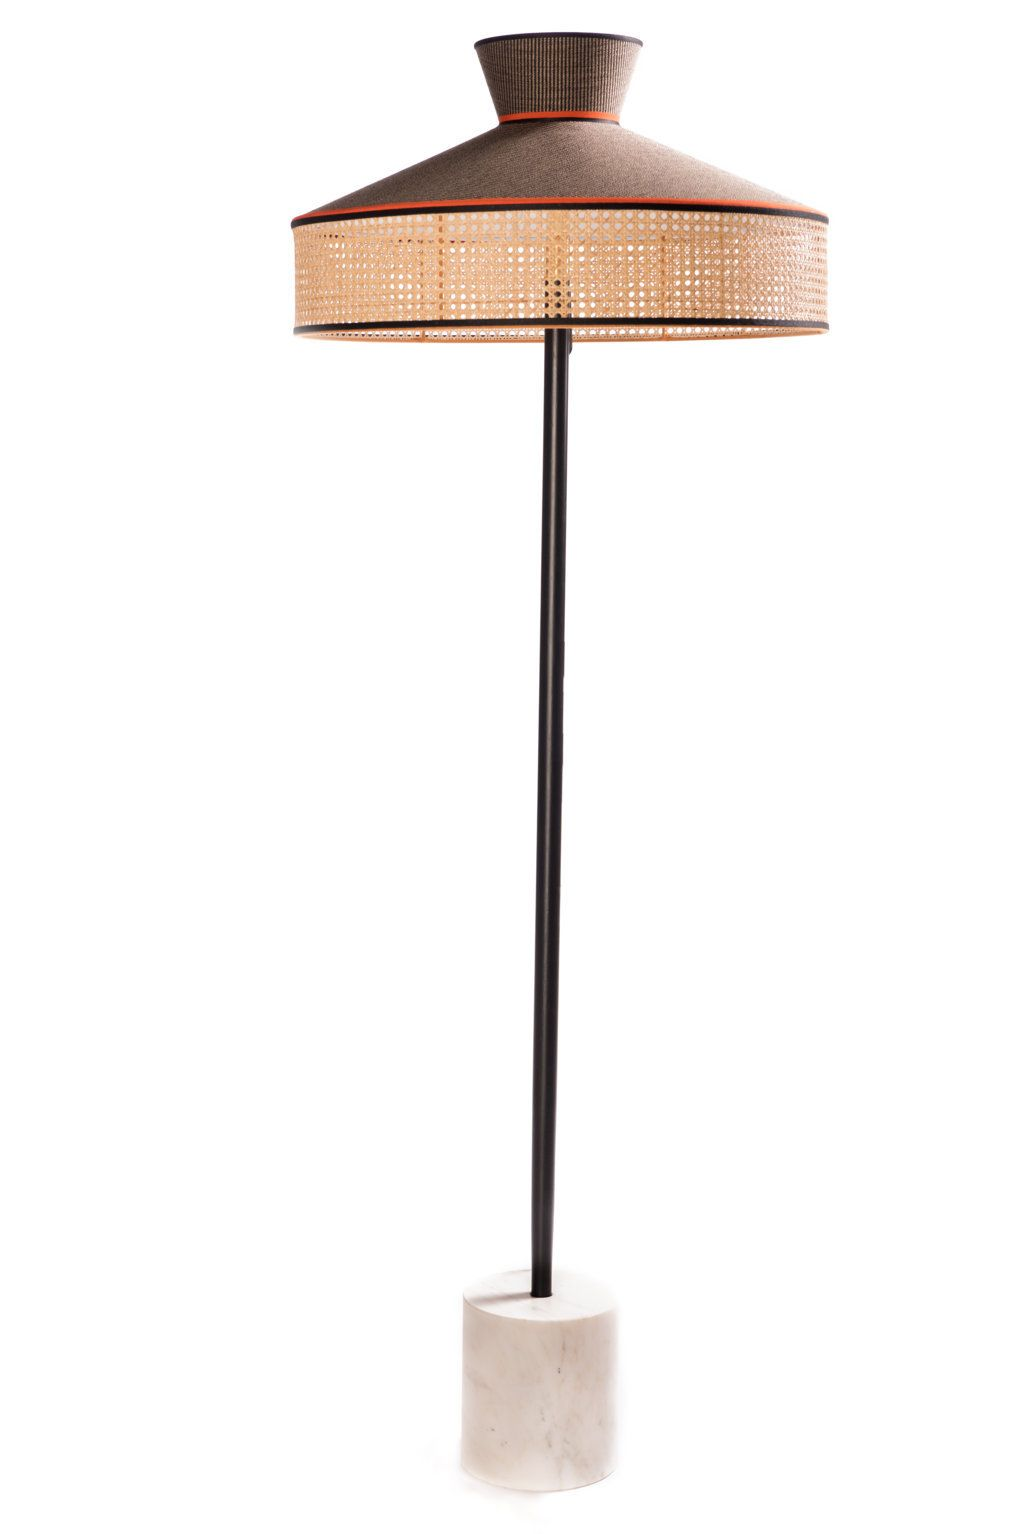 Thonet Lampe Wagasa By Servomuto Gebrüder Thonet Vienna Light Lighting